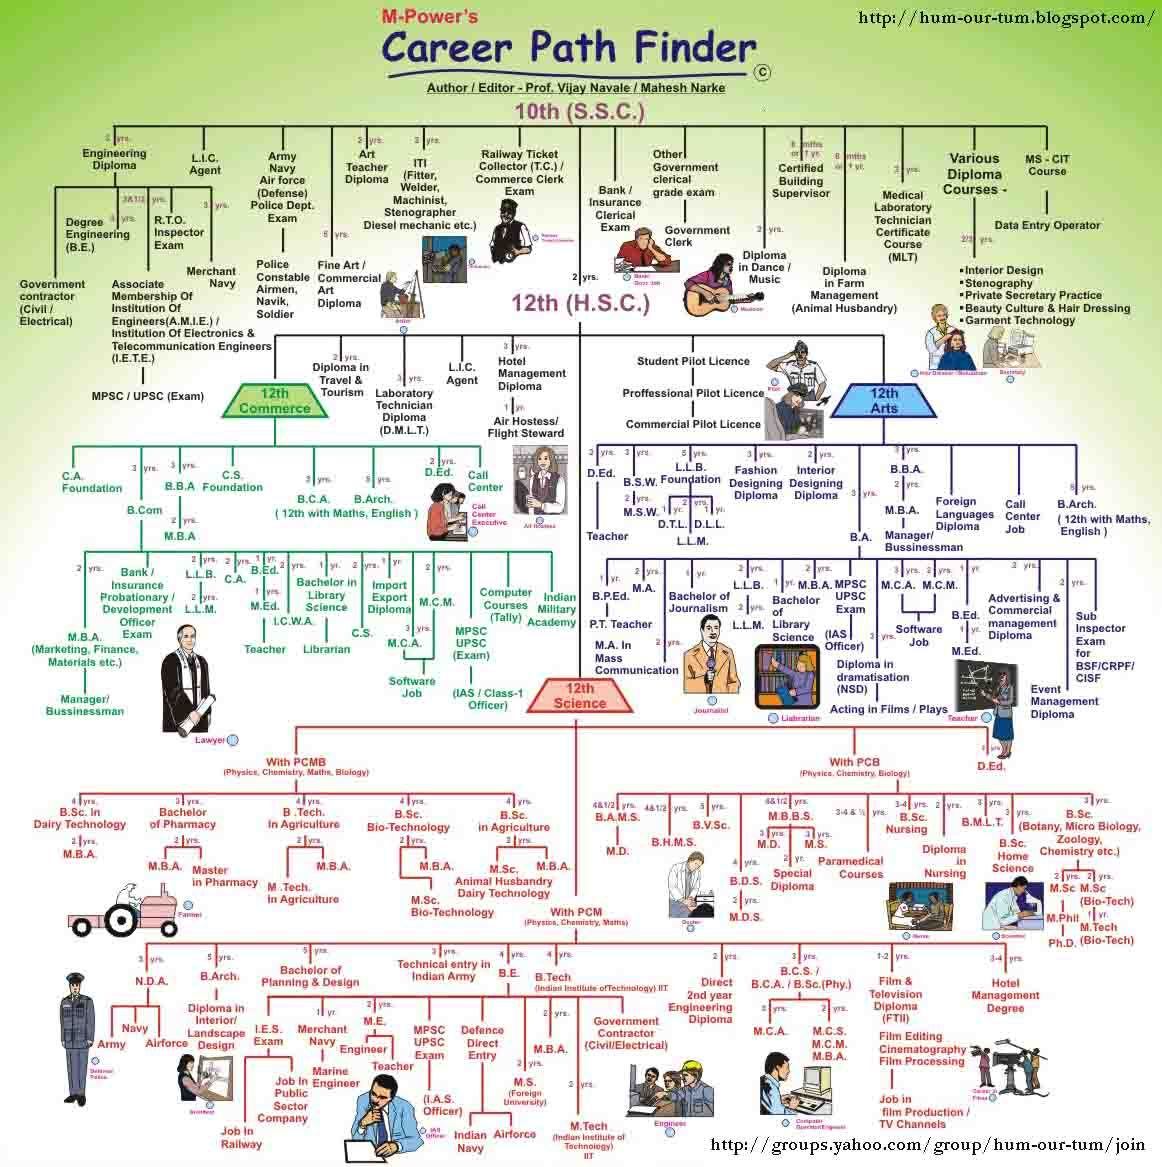 MPower's Career Path Finder Chart by Prof. Vijay Navale